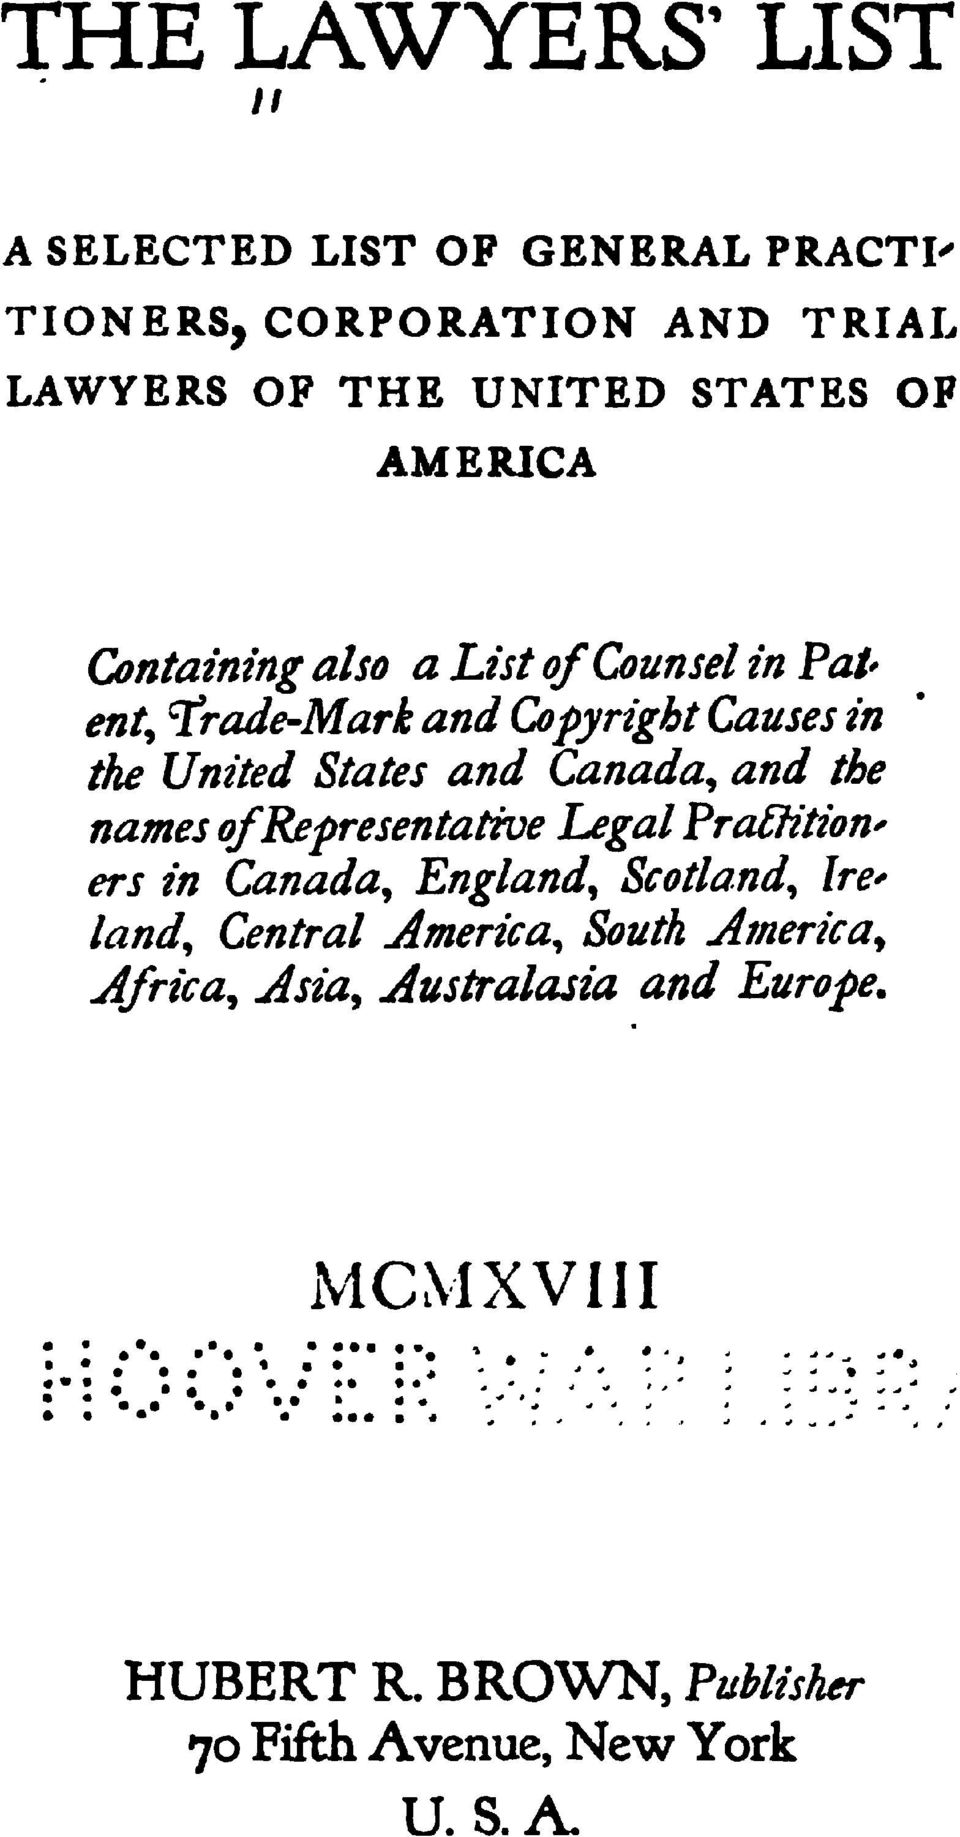 OP AMERICA Containing also a List of Counsel in Patent^ Trade-Mark and CopyrightCauses in the United States and Canada^